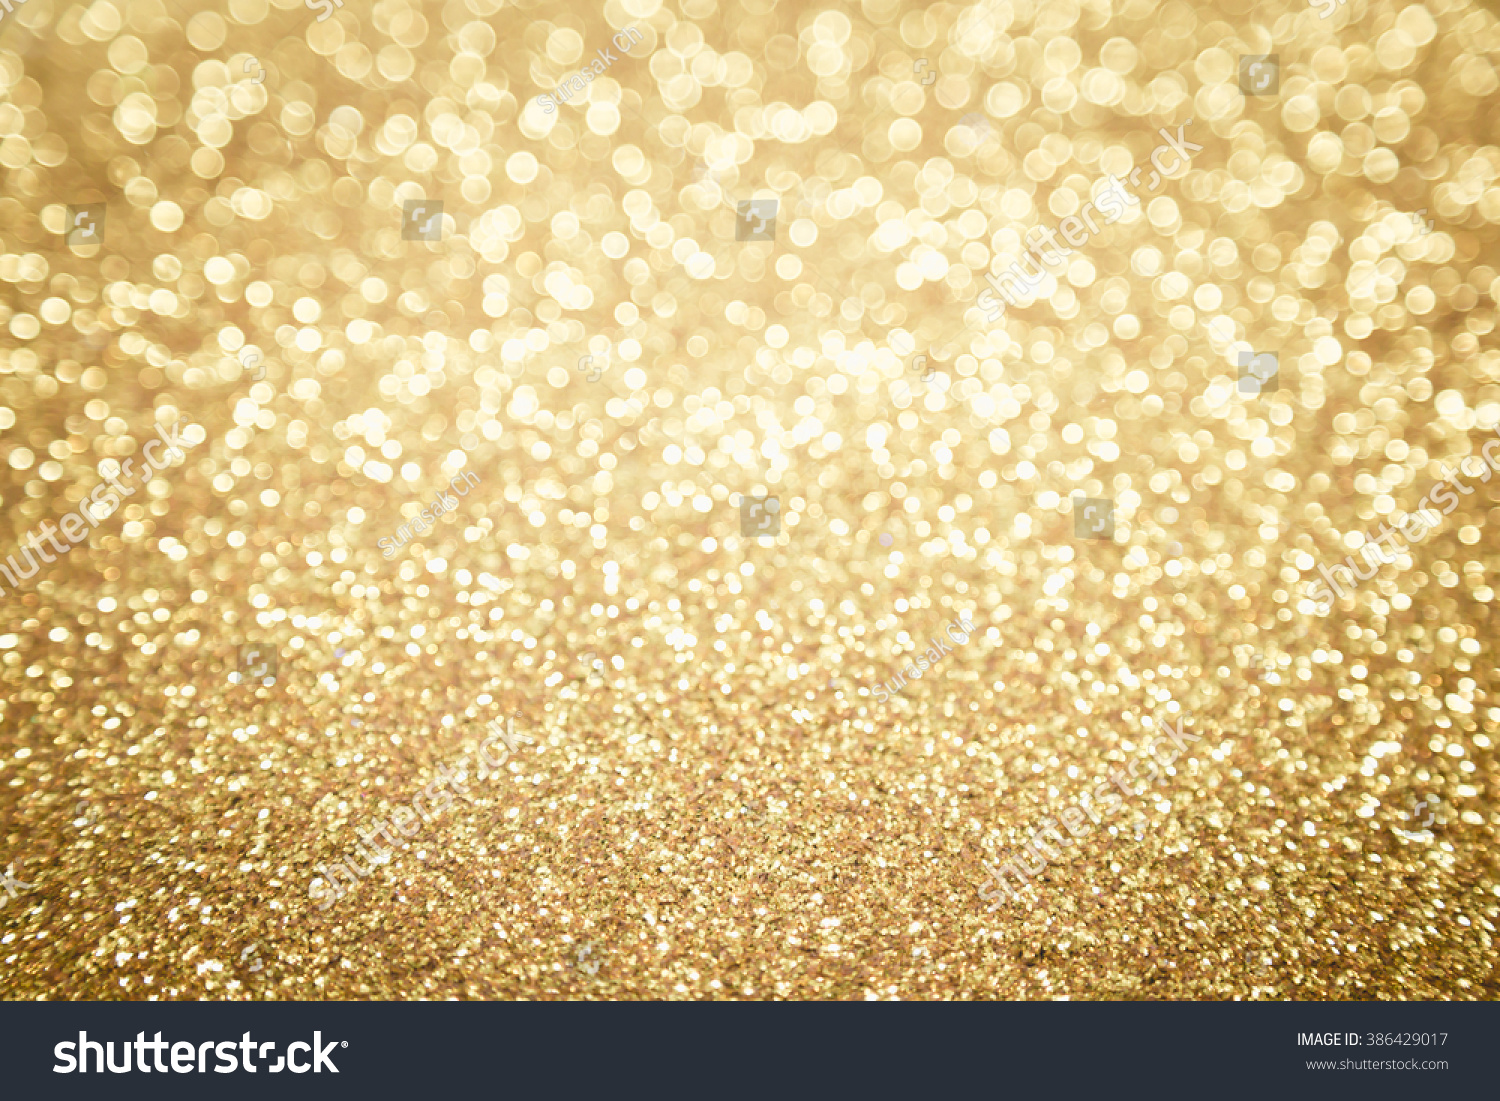 Abstract Blurred Gold Glitter Bokeh… Stock Photo 386429017